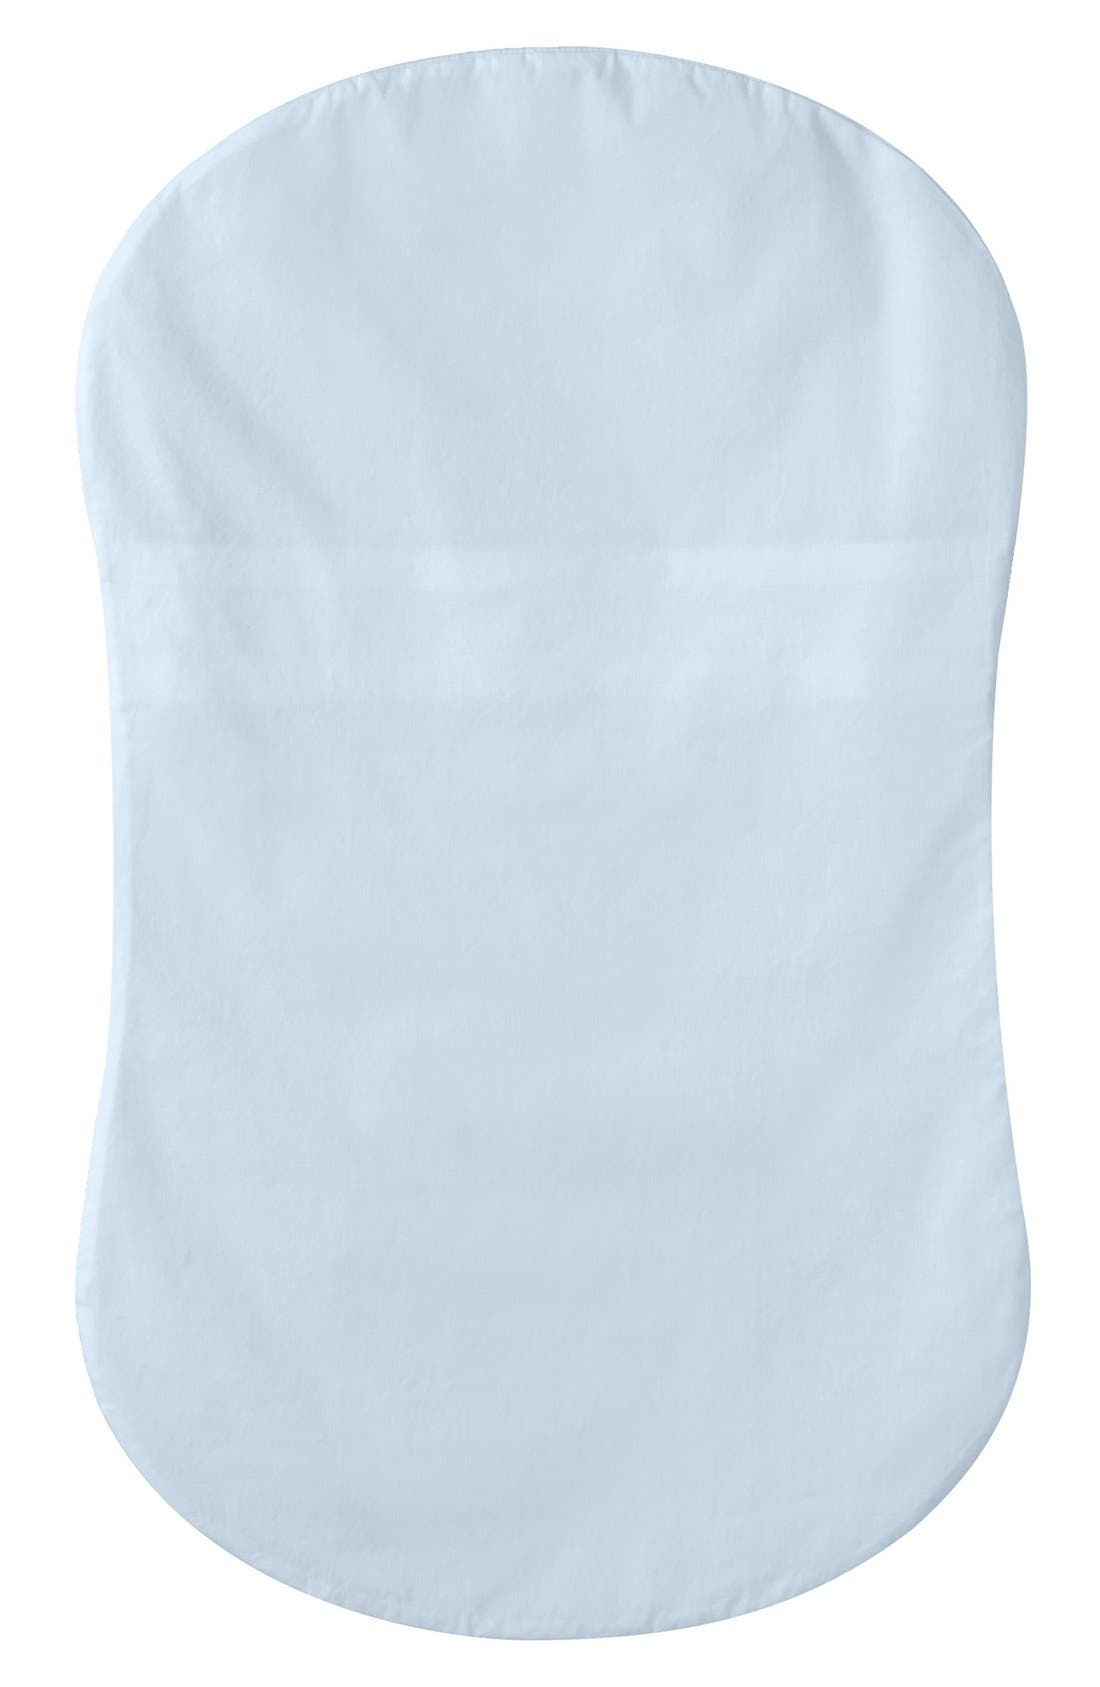 HALO<sup>®</sup> Innovations Cotton Fitted Sheet for HALO<sup>®</sup> Innovations Bassinest<sup>™</sup> Swivel Sleeper,                             Main thumbnail 1, color,                             Blue